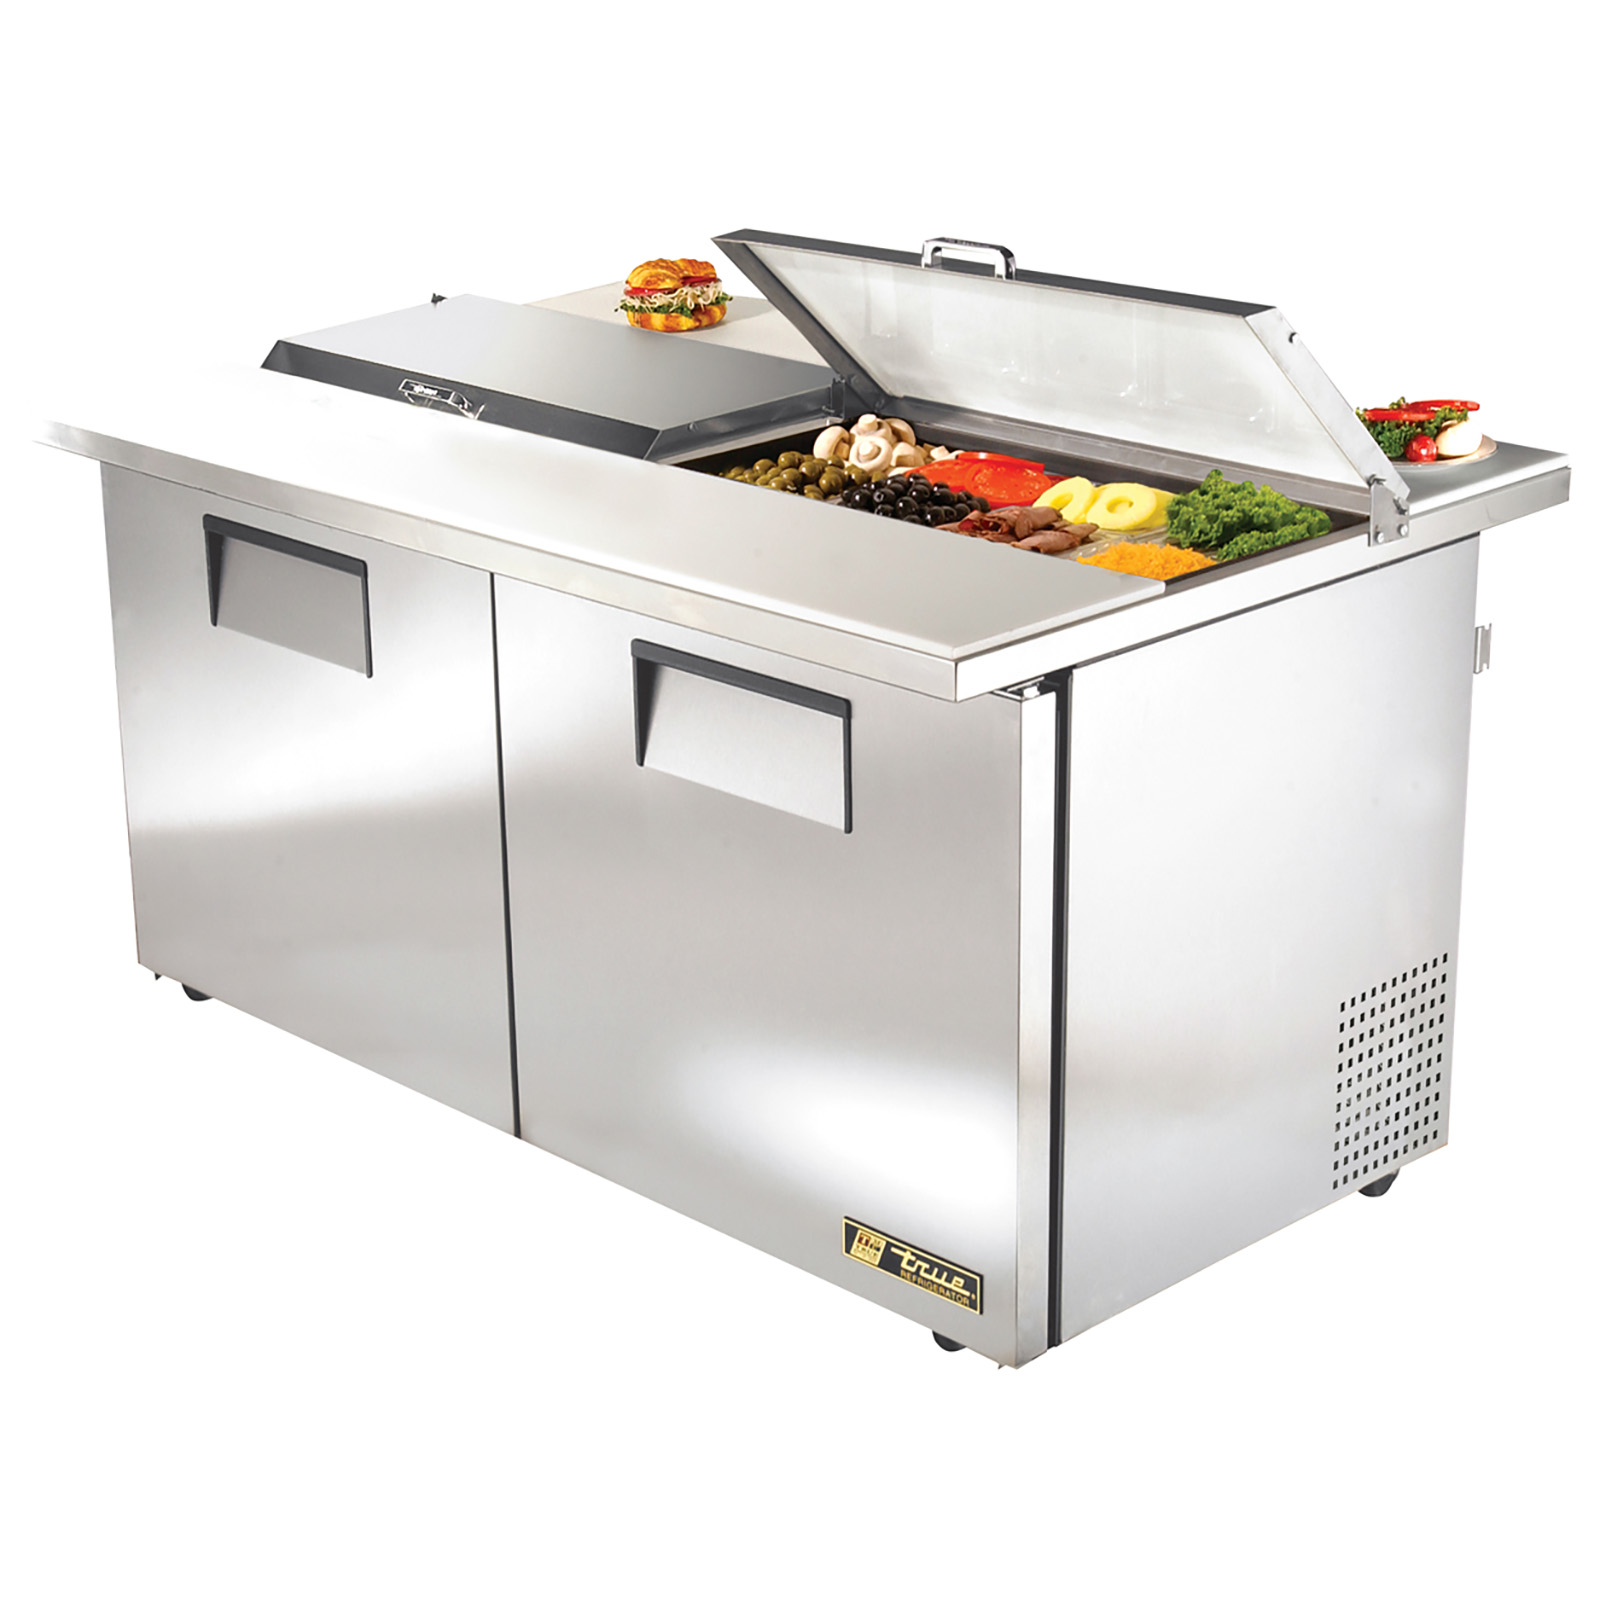 TSSU-60-16-DS-ST-ADA True - ADA Compliant Dual Side Sandwich/Salad Unit (16) 1/6 size (4